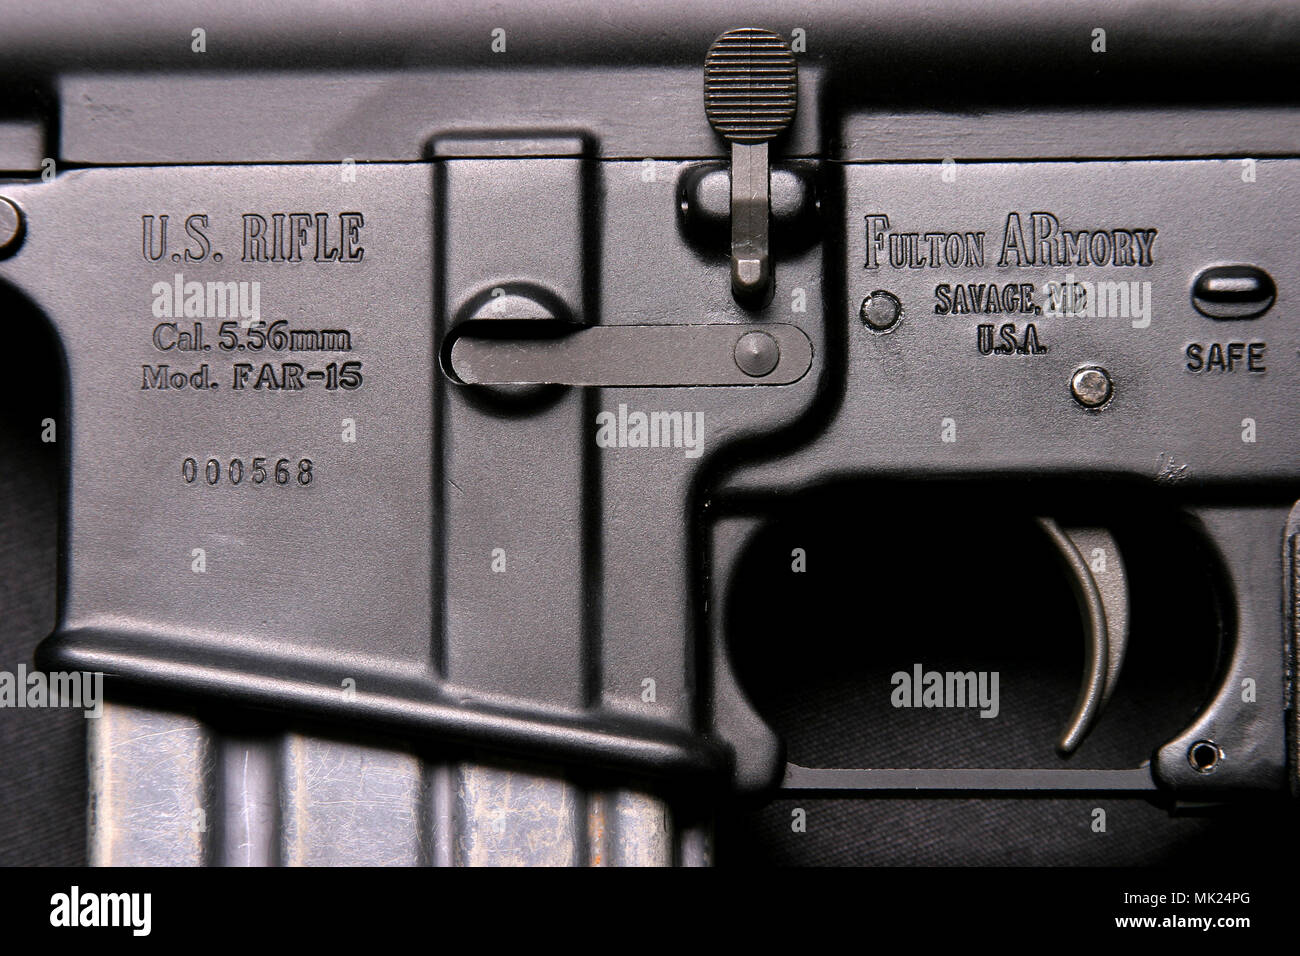 Ar15 Stock Photos & Ar15 Stock Images - Alamy